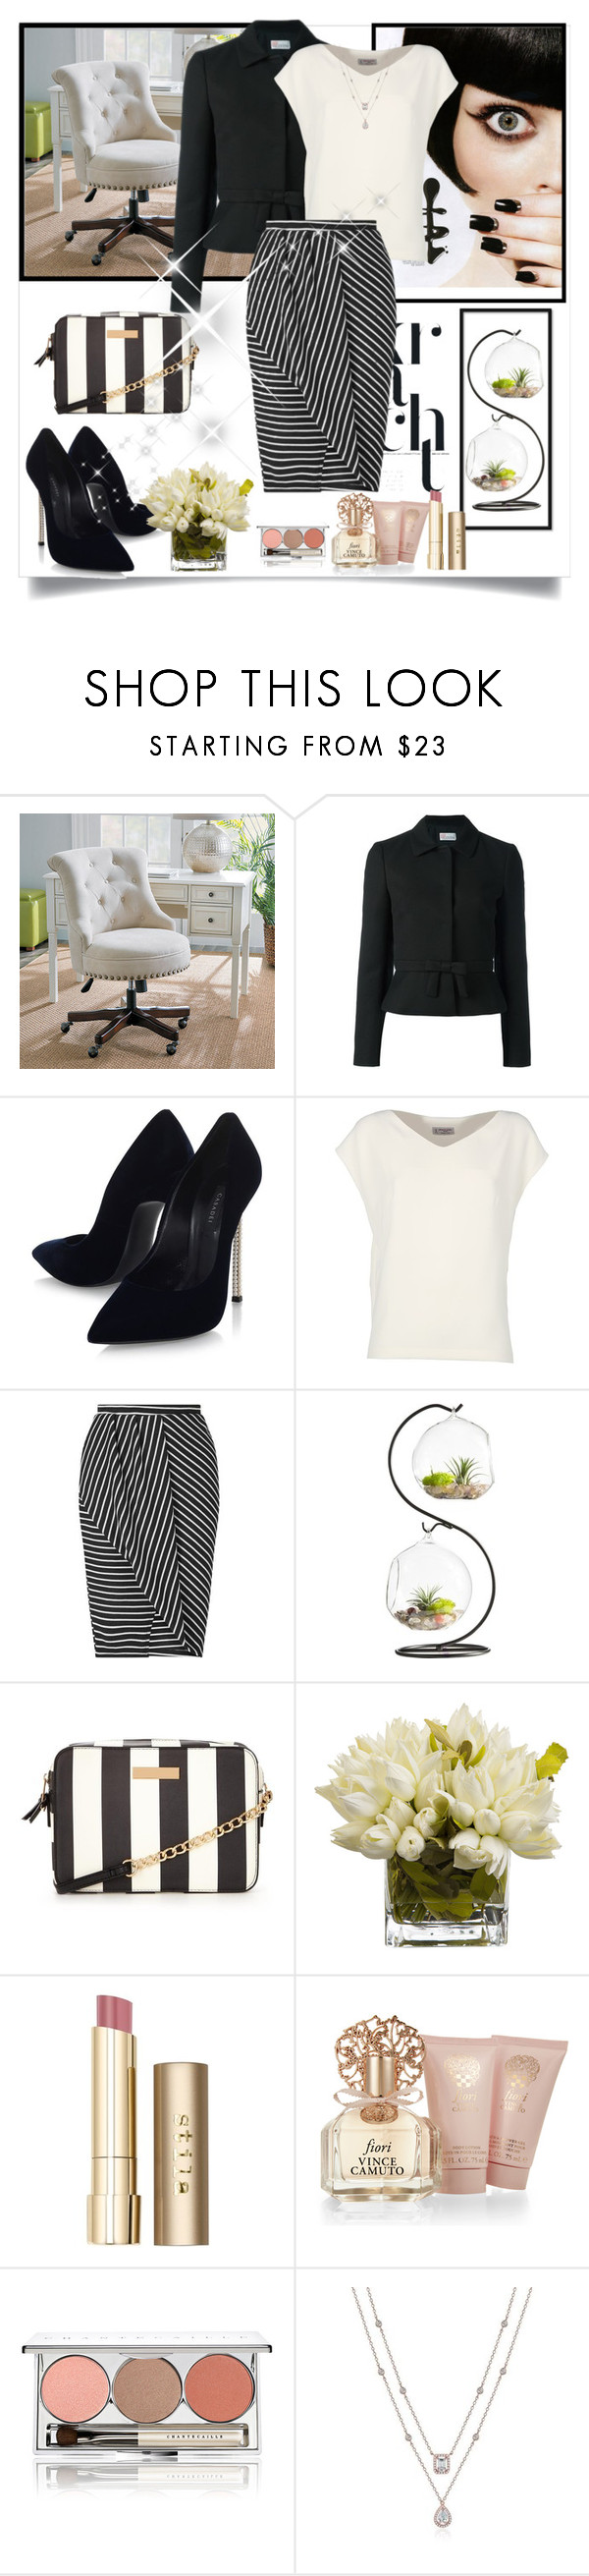 """Untitled #1192"" by misaflowers ❤ liked on Polyvore featuring Improvements, RED Valentino, Casadei, Alberto Biani, Miss Selfridge, Stila, Vince Camuto and Chantecaille"